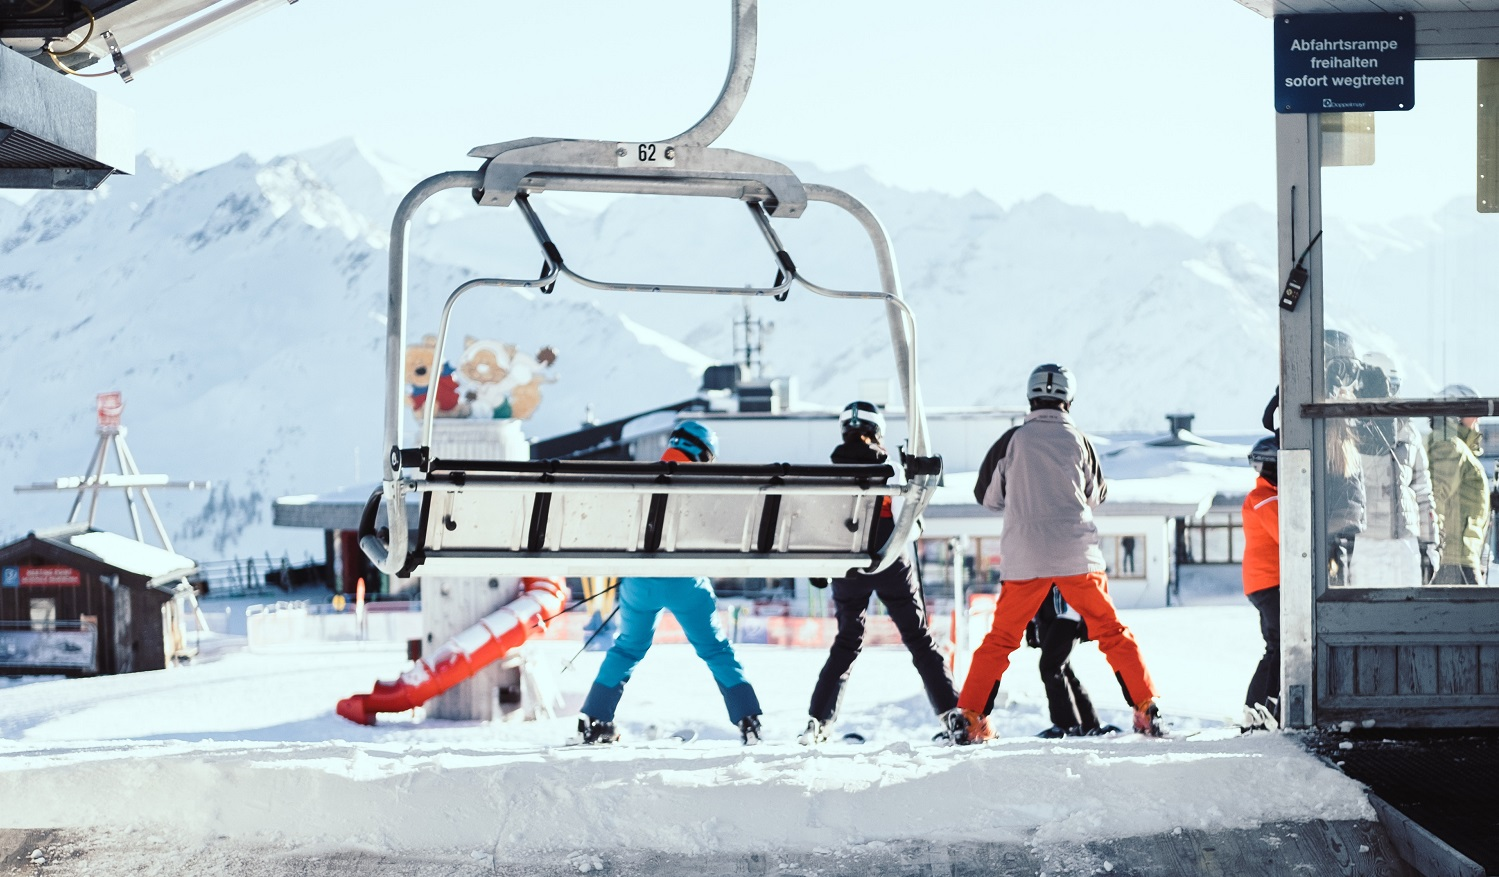 Expedia: Ski Holidays International Research and Broadcast Day